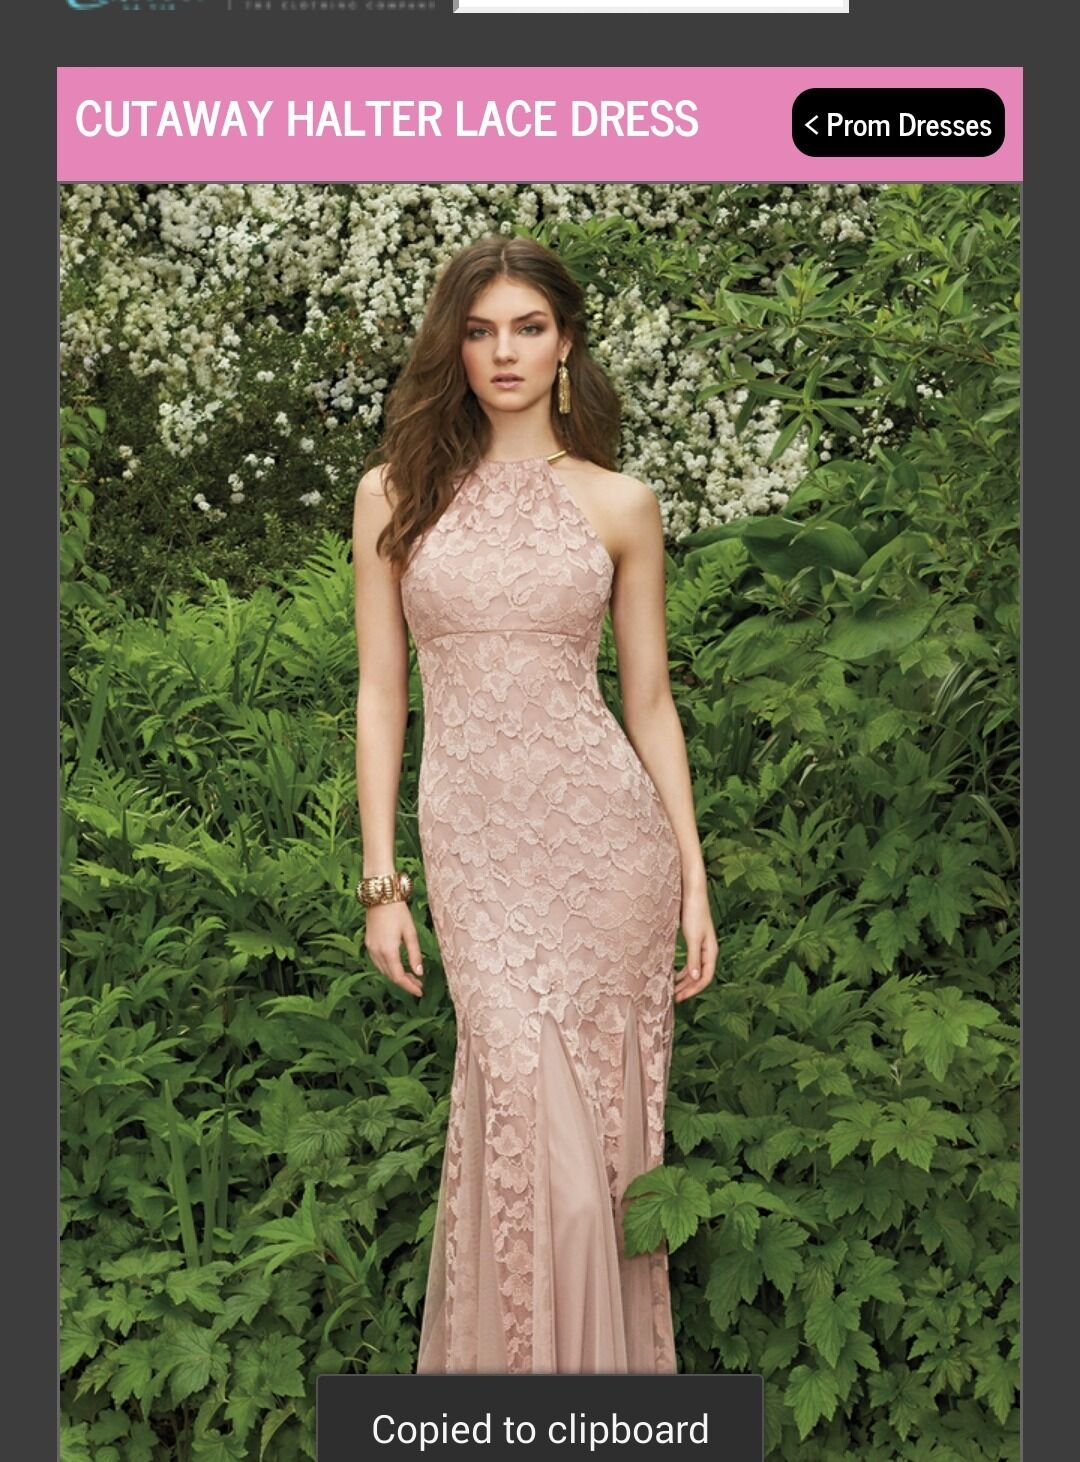 Cutaway Halter Lace Dress (Xscape By By By Joanna Chen) Sz 6 Nude color b5251b